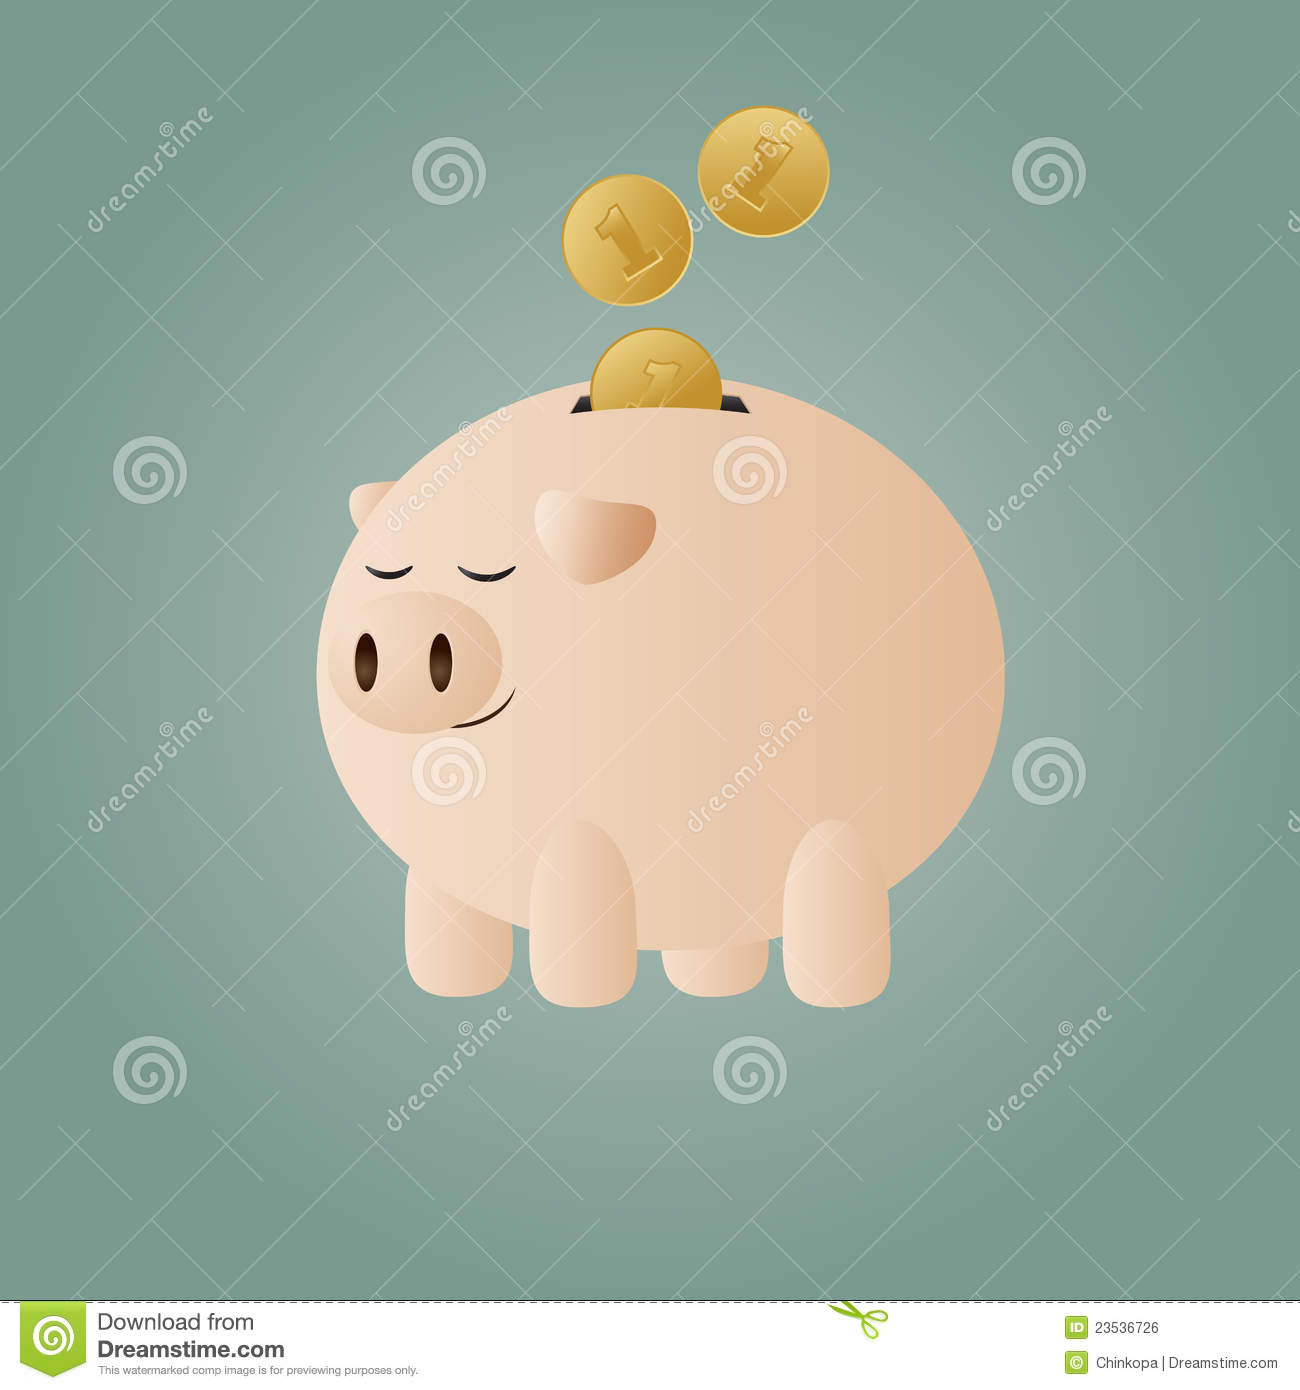 Piggy Bank With Coins Stock Vector Illustration Of Golden